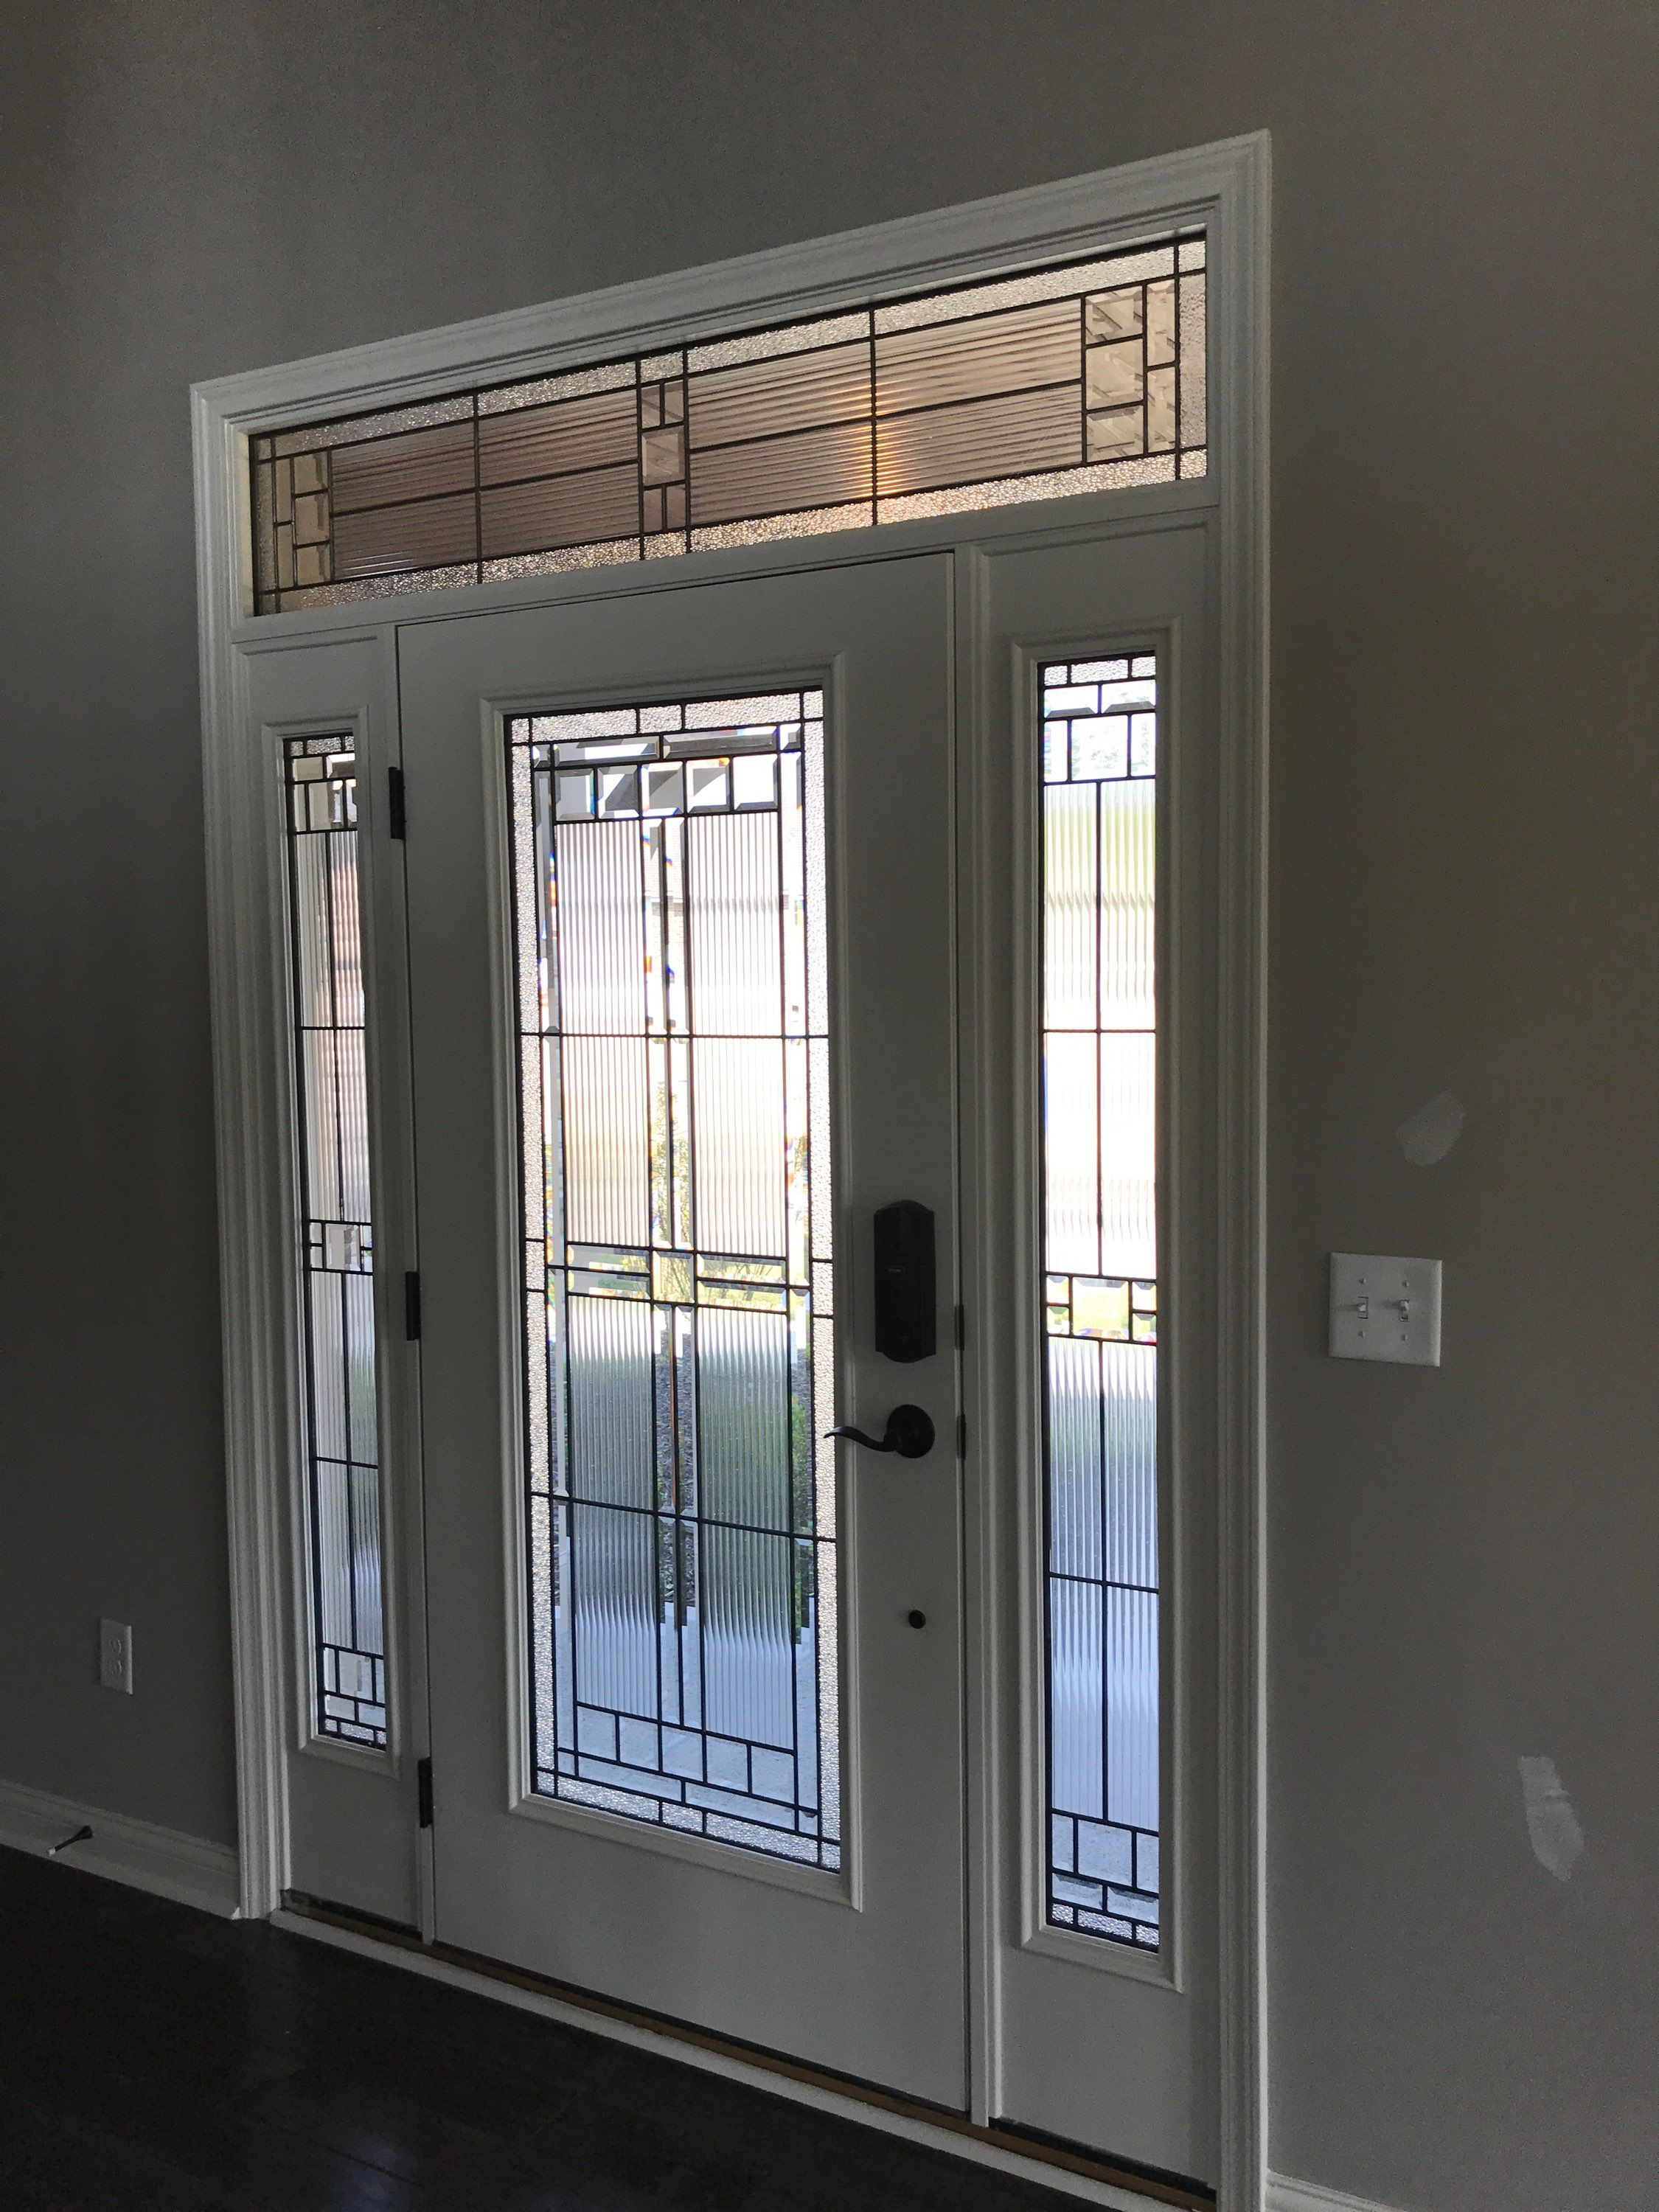 INTERIOR VIEW OF SARATOGA UPGRADED FRONT DOOR, SIDELITES, AND TRANSOM